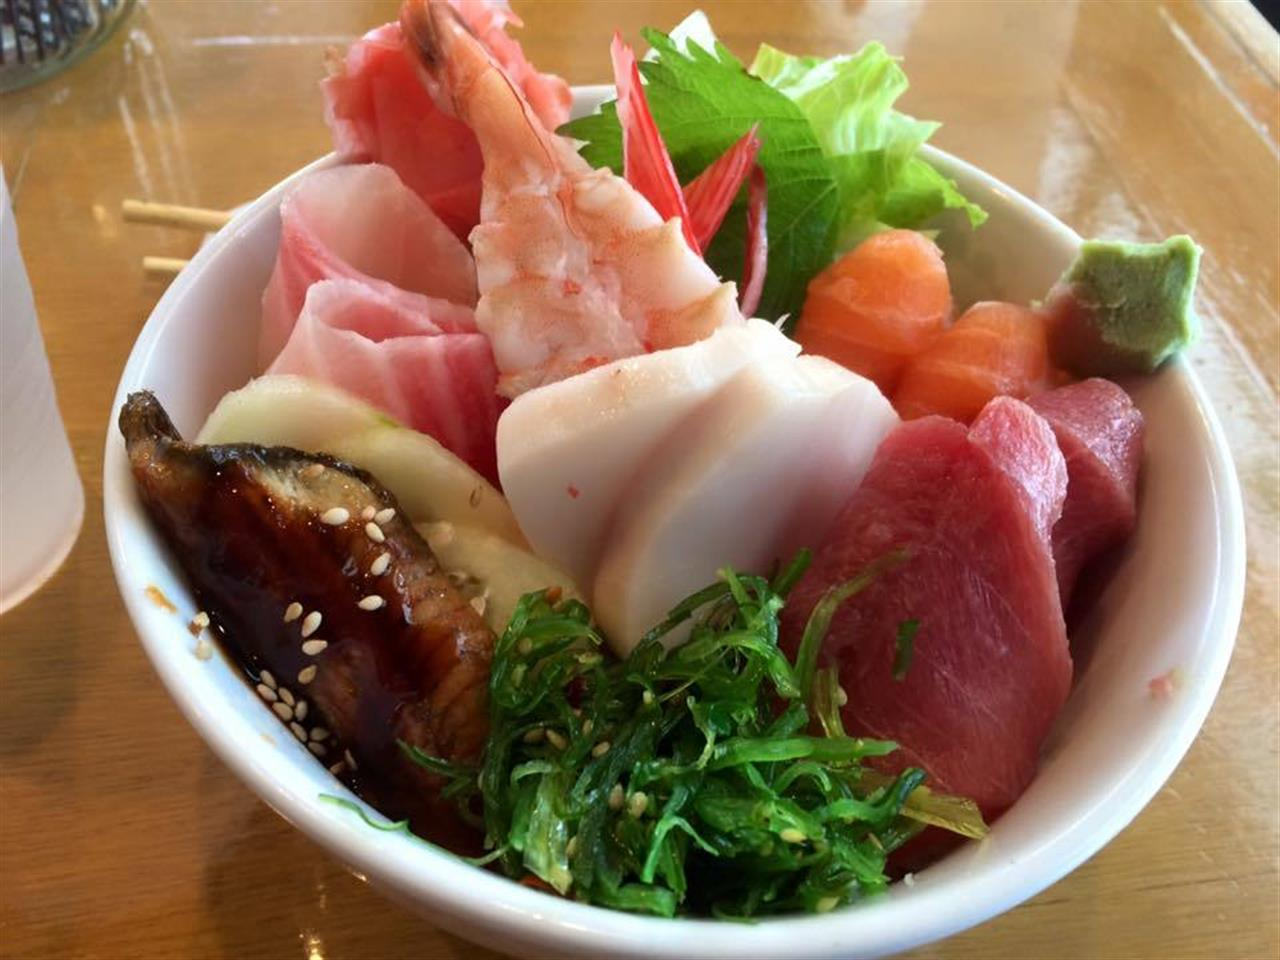 Chirashi lunch special at Blue Reef Sushi To Go near Red Mile Race Track in Lexington, KY